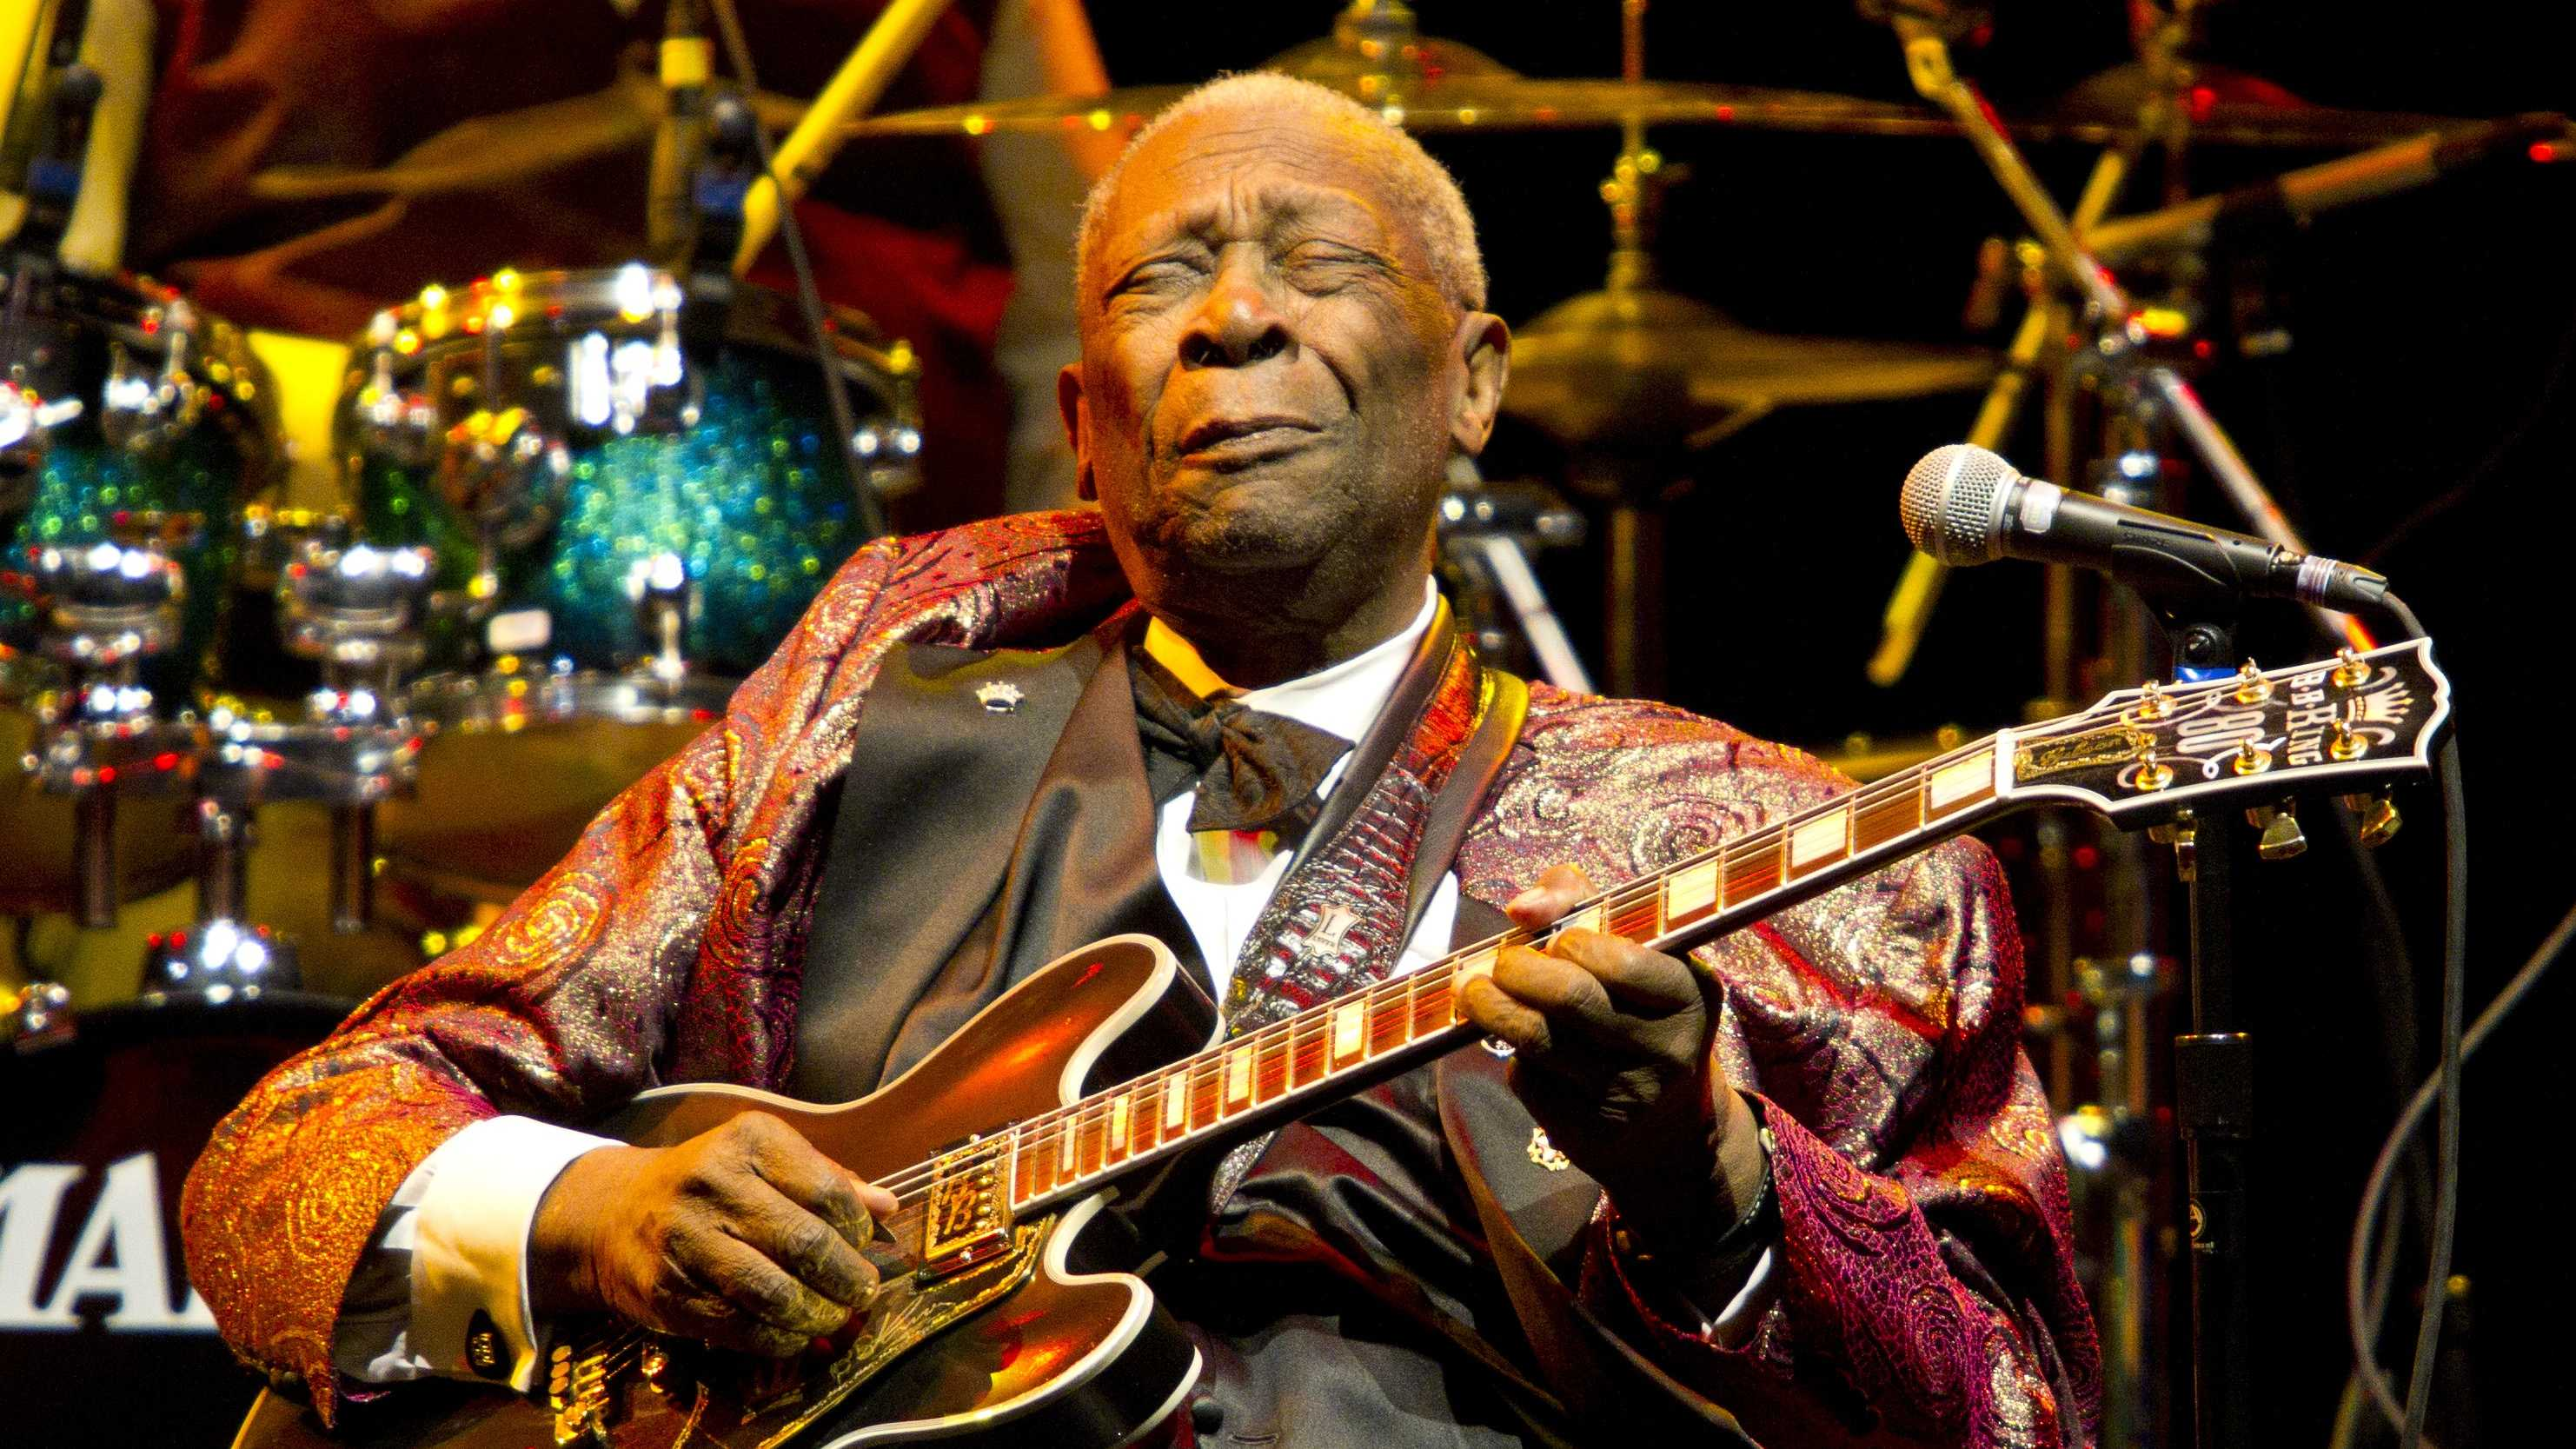 B.B. King's scorching guitar licks and heartfelt vocals made him the idol of generations of musicians and fans while earning him the nickname King of the Blues. For most of a career spanning nearly 70 years, King was a mentor to scores of guitarists, who included Eric Clapton, Otis Rush, Buddy Guy, Jimi Hendrix, John Mayall and Keith Richards. (September 16, 1925 – May 14, 2015)